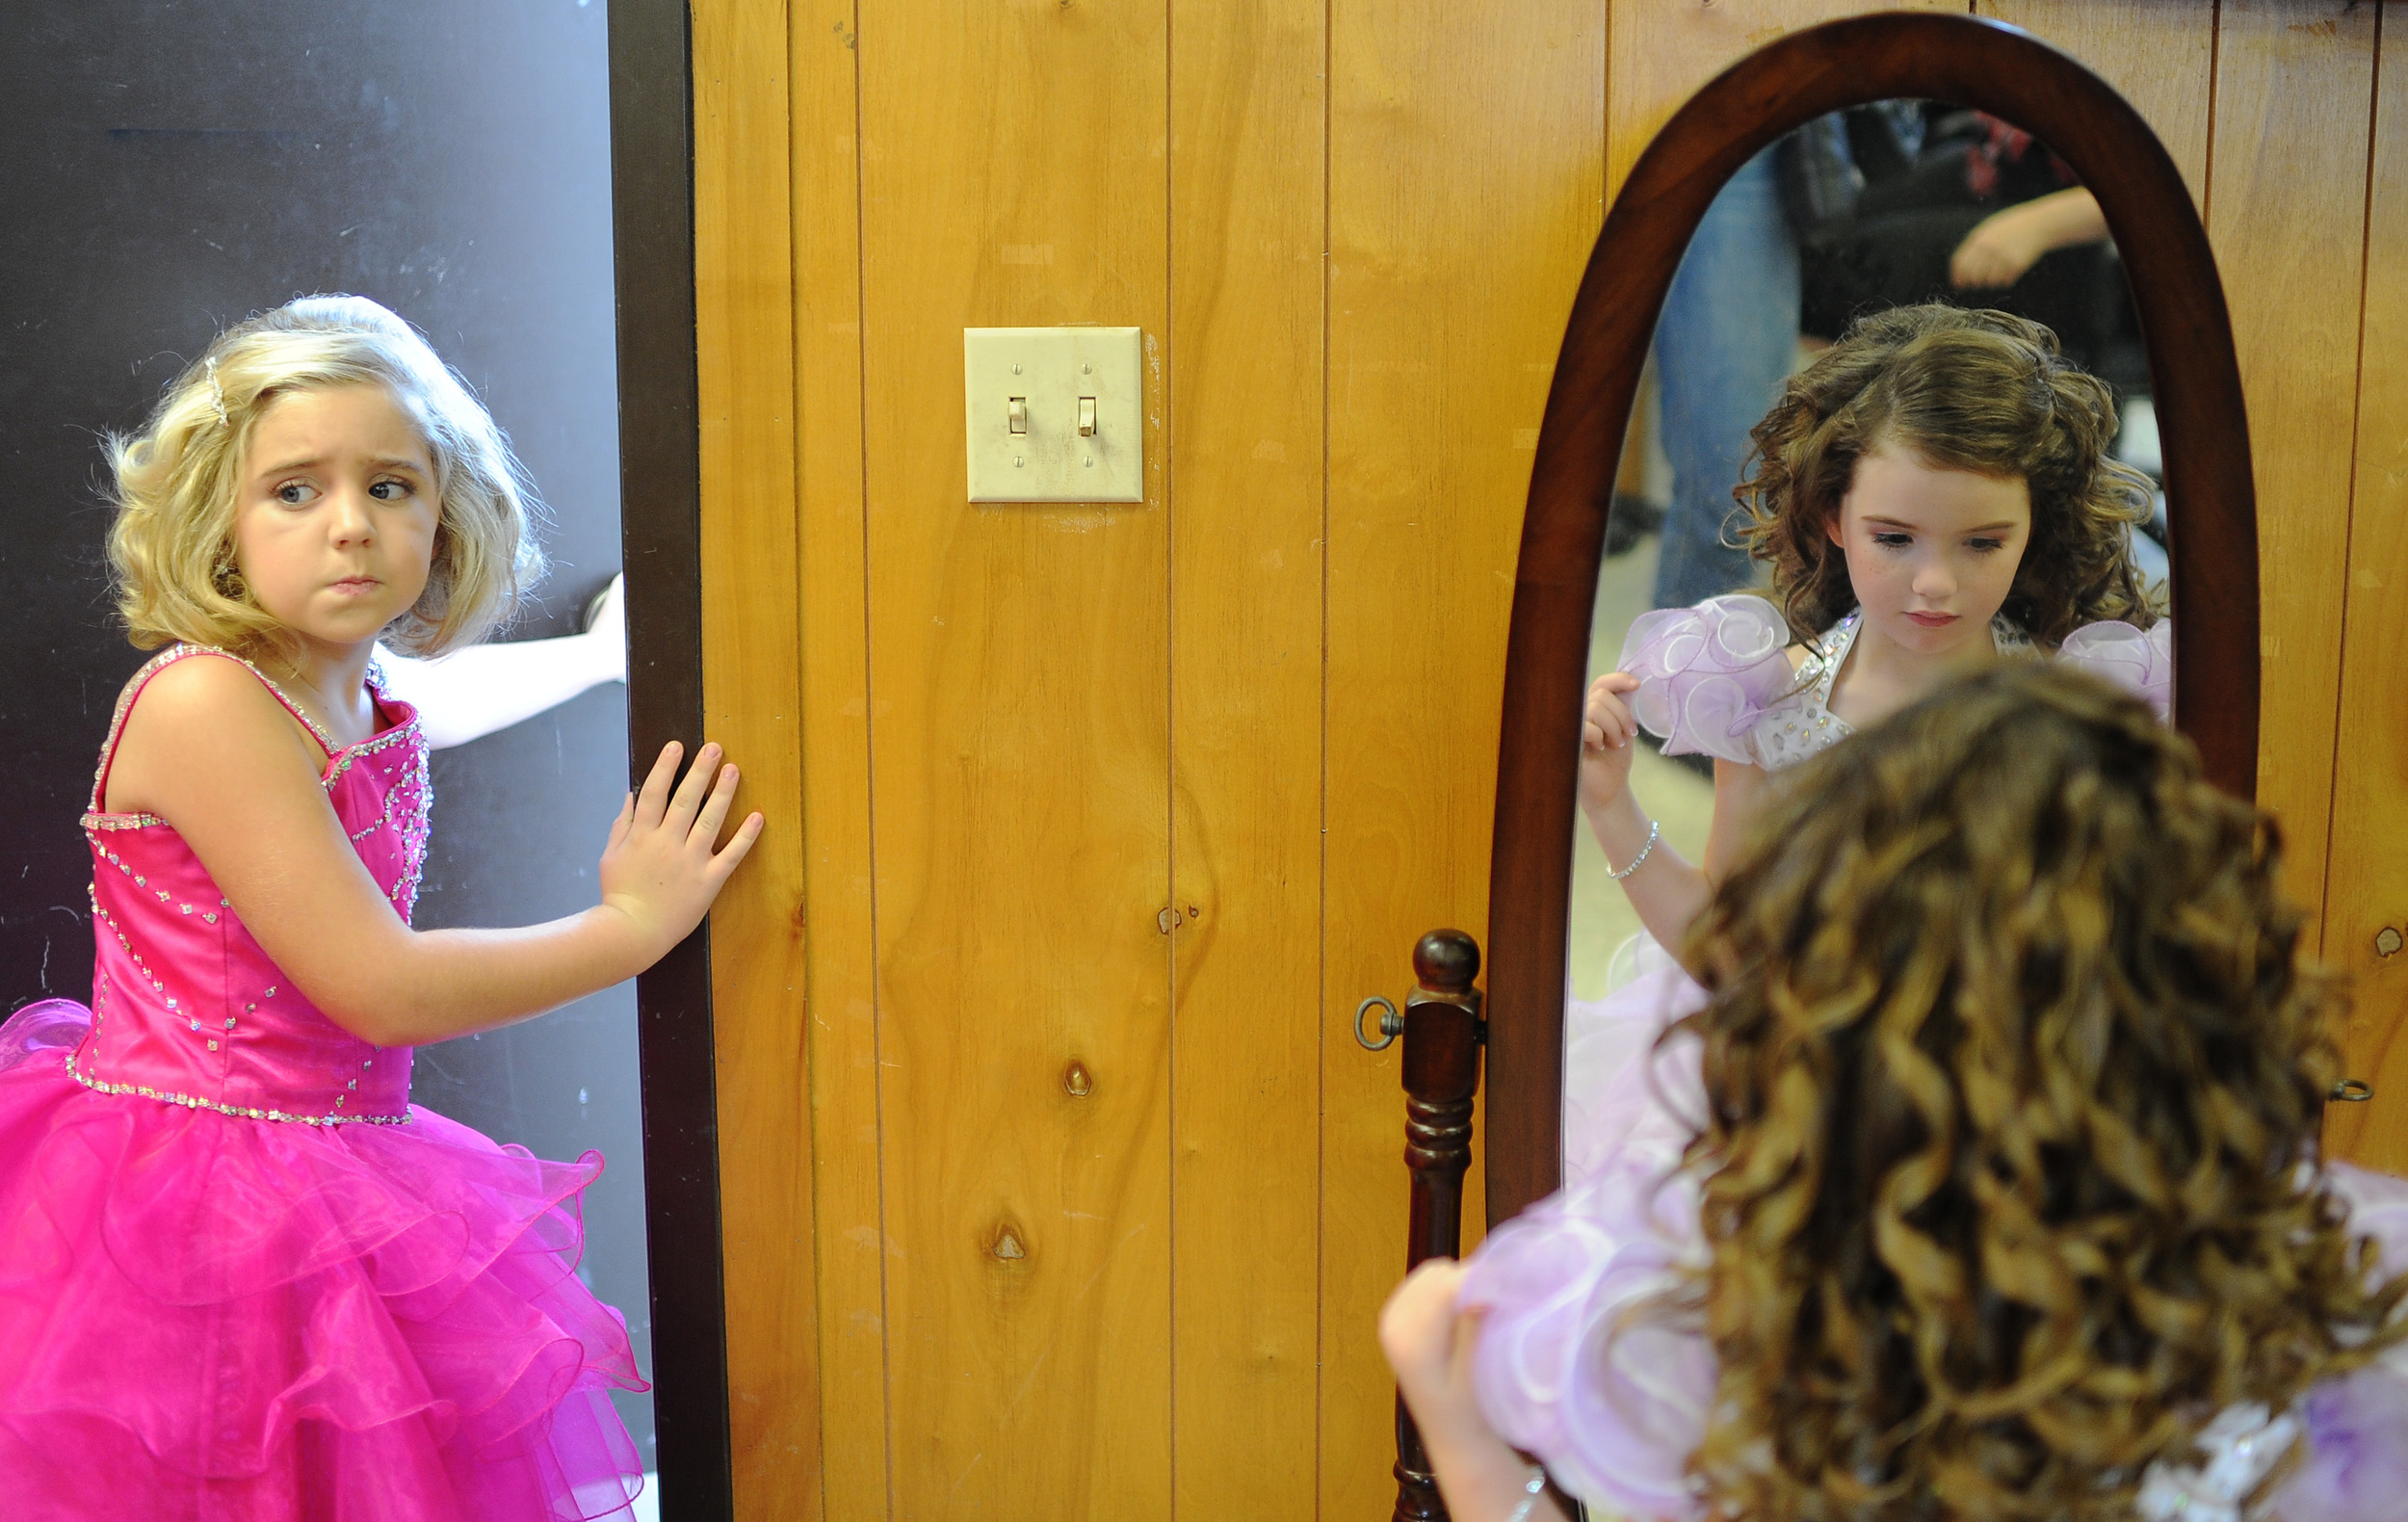 """Carlie Braglin, 8, left, looks back at her fellow competitors before heading out the door to compete in the 6-8 years division of the Harvest Pageant for Babies and Children at the 20th annual Hillsborough County Fair in Brandon on Sunday, October 20, 2013. Meanwhile, Isabelle Murphy, 5, right, checks her make-up and straightens her dress in the mirror prior to competing in the 4-5 years division. The children were divided into groups by age and gender for the competition. Each child, often with the help of his or her mother or father, walked up on the stage to be judged. Many of the girls shyly waved and blew kisses to the crowd. The beauty pageant cost up to $70 to register for all of the events, which included """"most photogenic,"""" """"prettiest eyes,"""" """"best smile,"""" and """"best attire."""" The judging was based on facial beauty, overall appearance, and personality on stage, but every entrant received a participation award."""